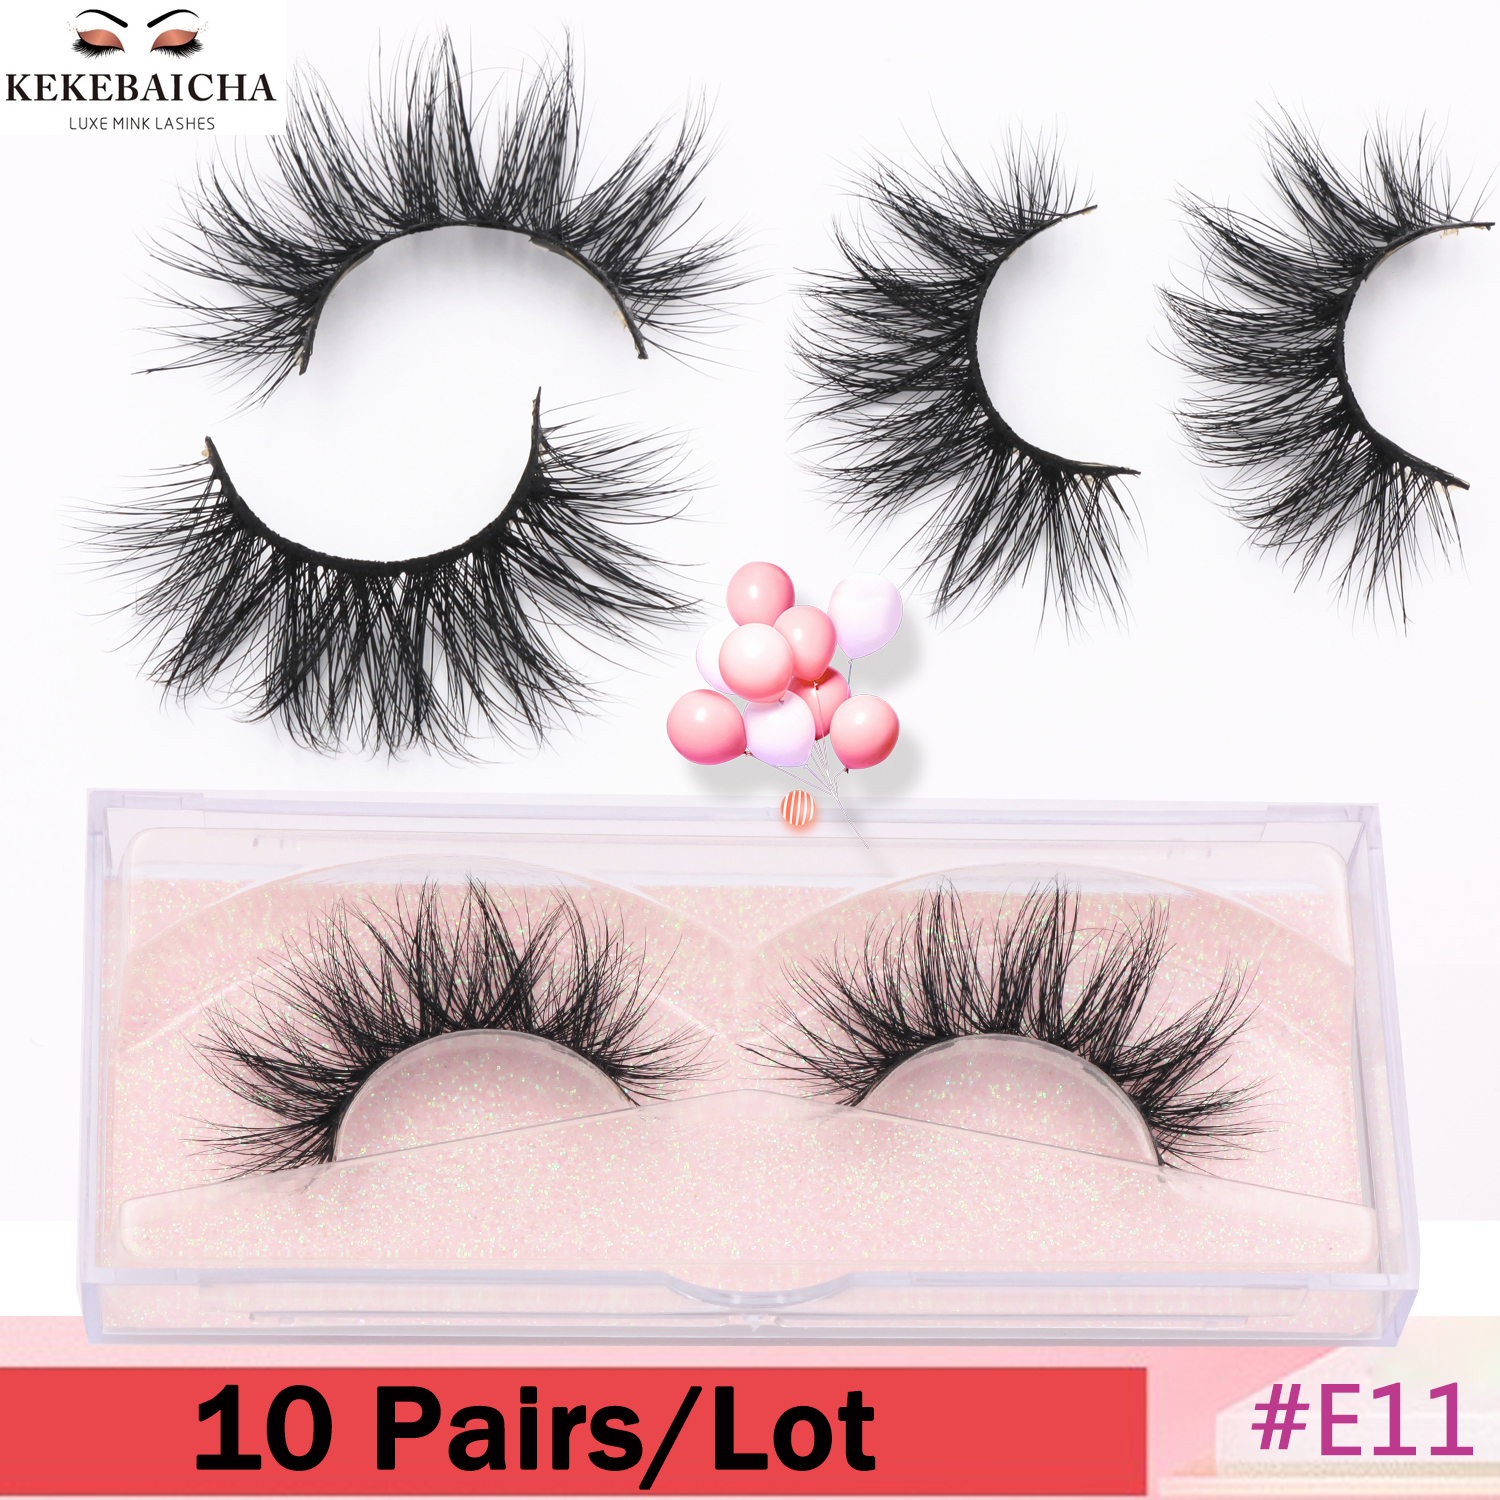 10 Pairs 3D Mink Eyelashes Glamour Volume Mink Lashes Fluffy Luxurious Lashes Long Lasting False Eyelash Makeup Fake Eyelashes